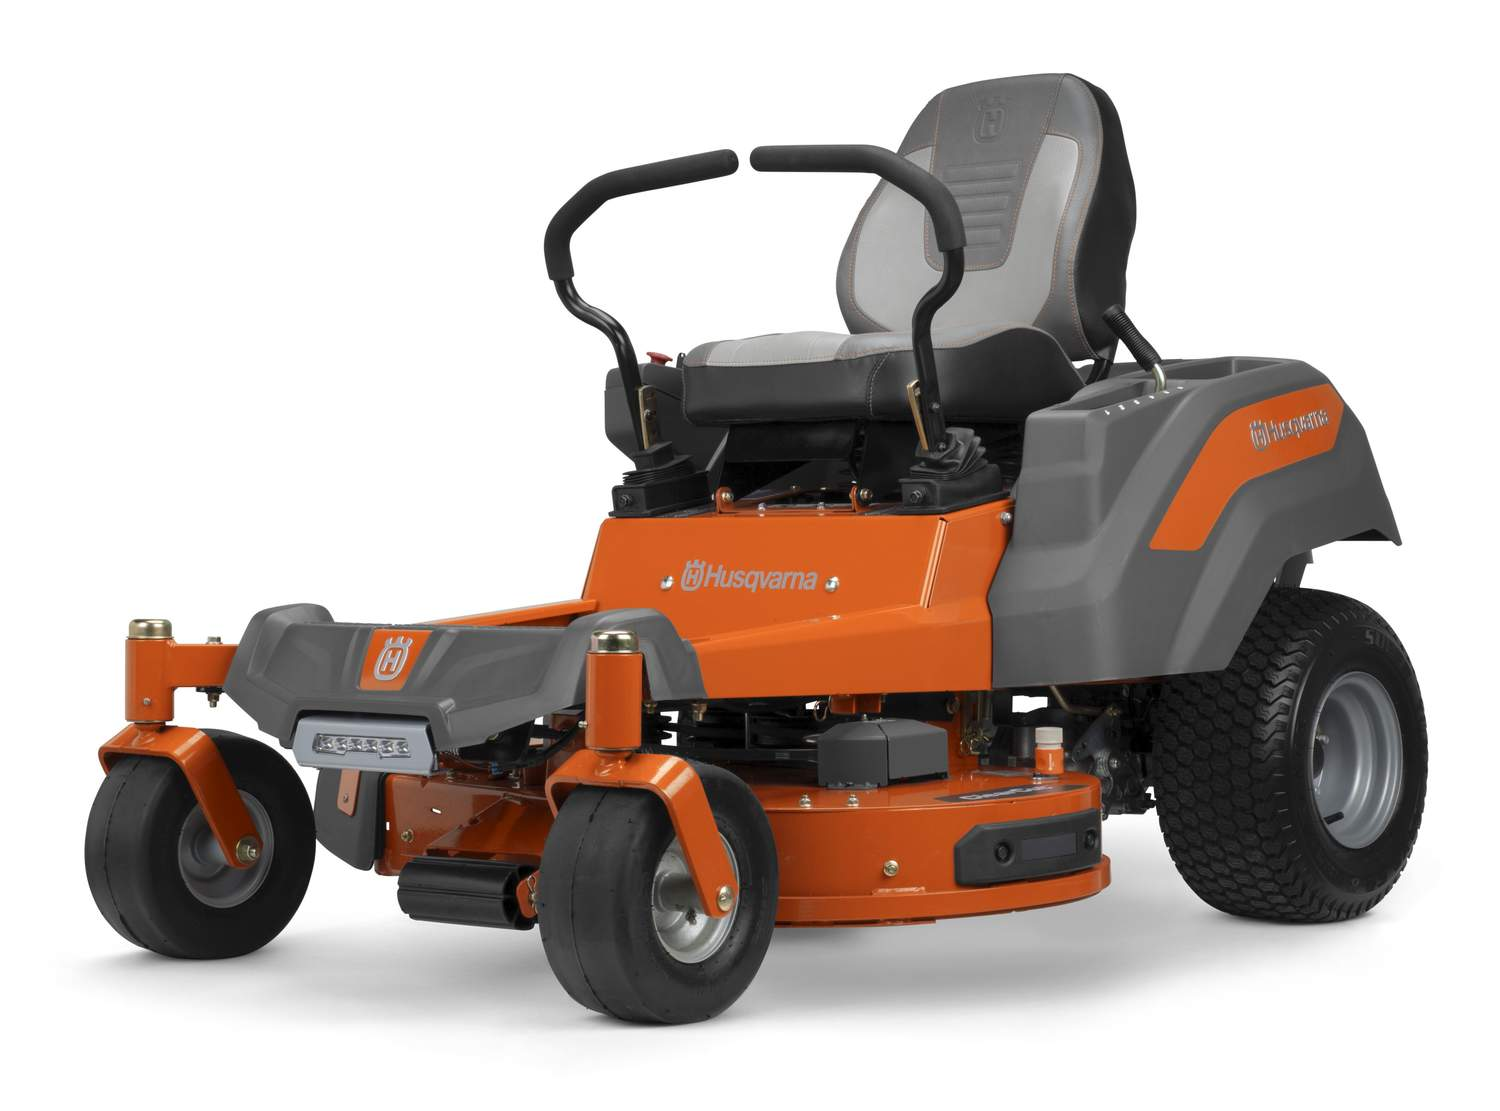 Husqvarna 967680901 Z200 Series 54 Inch 24 Hp Zero Turn